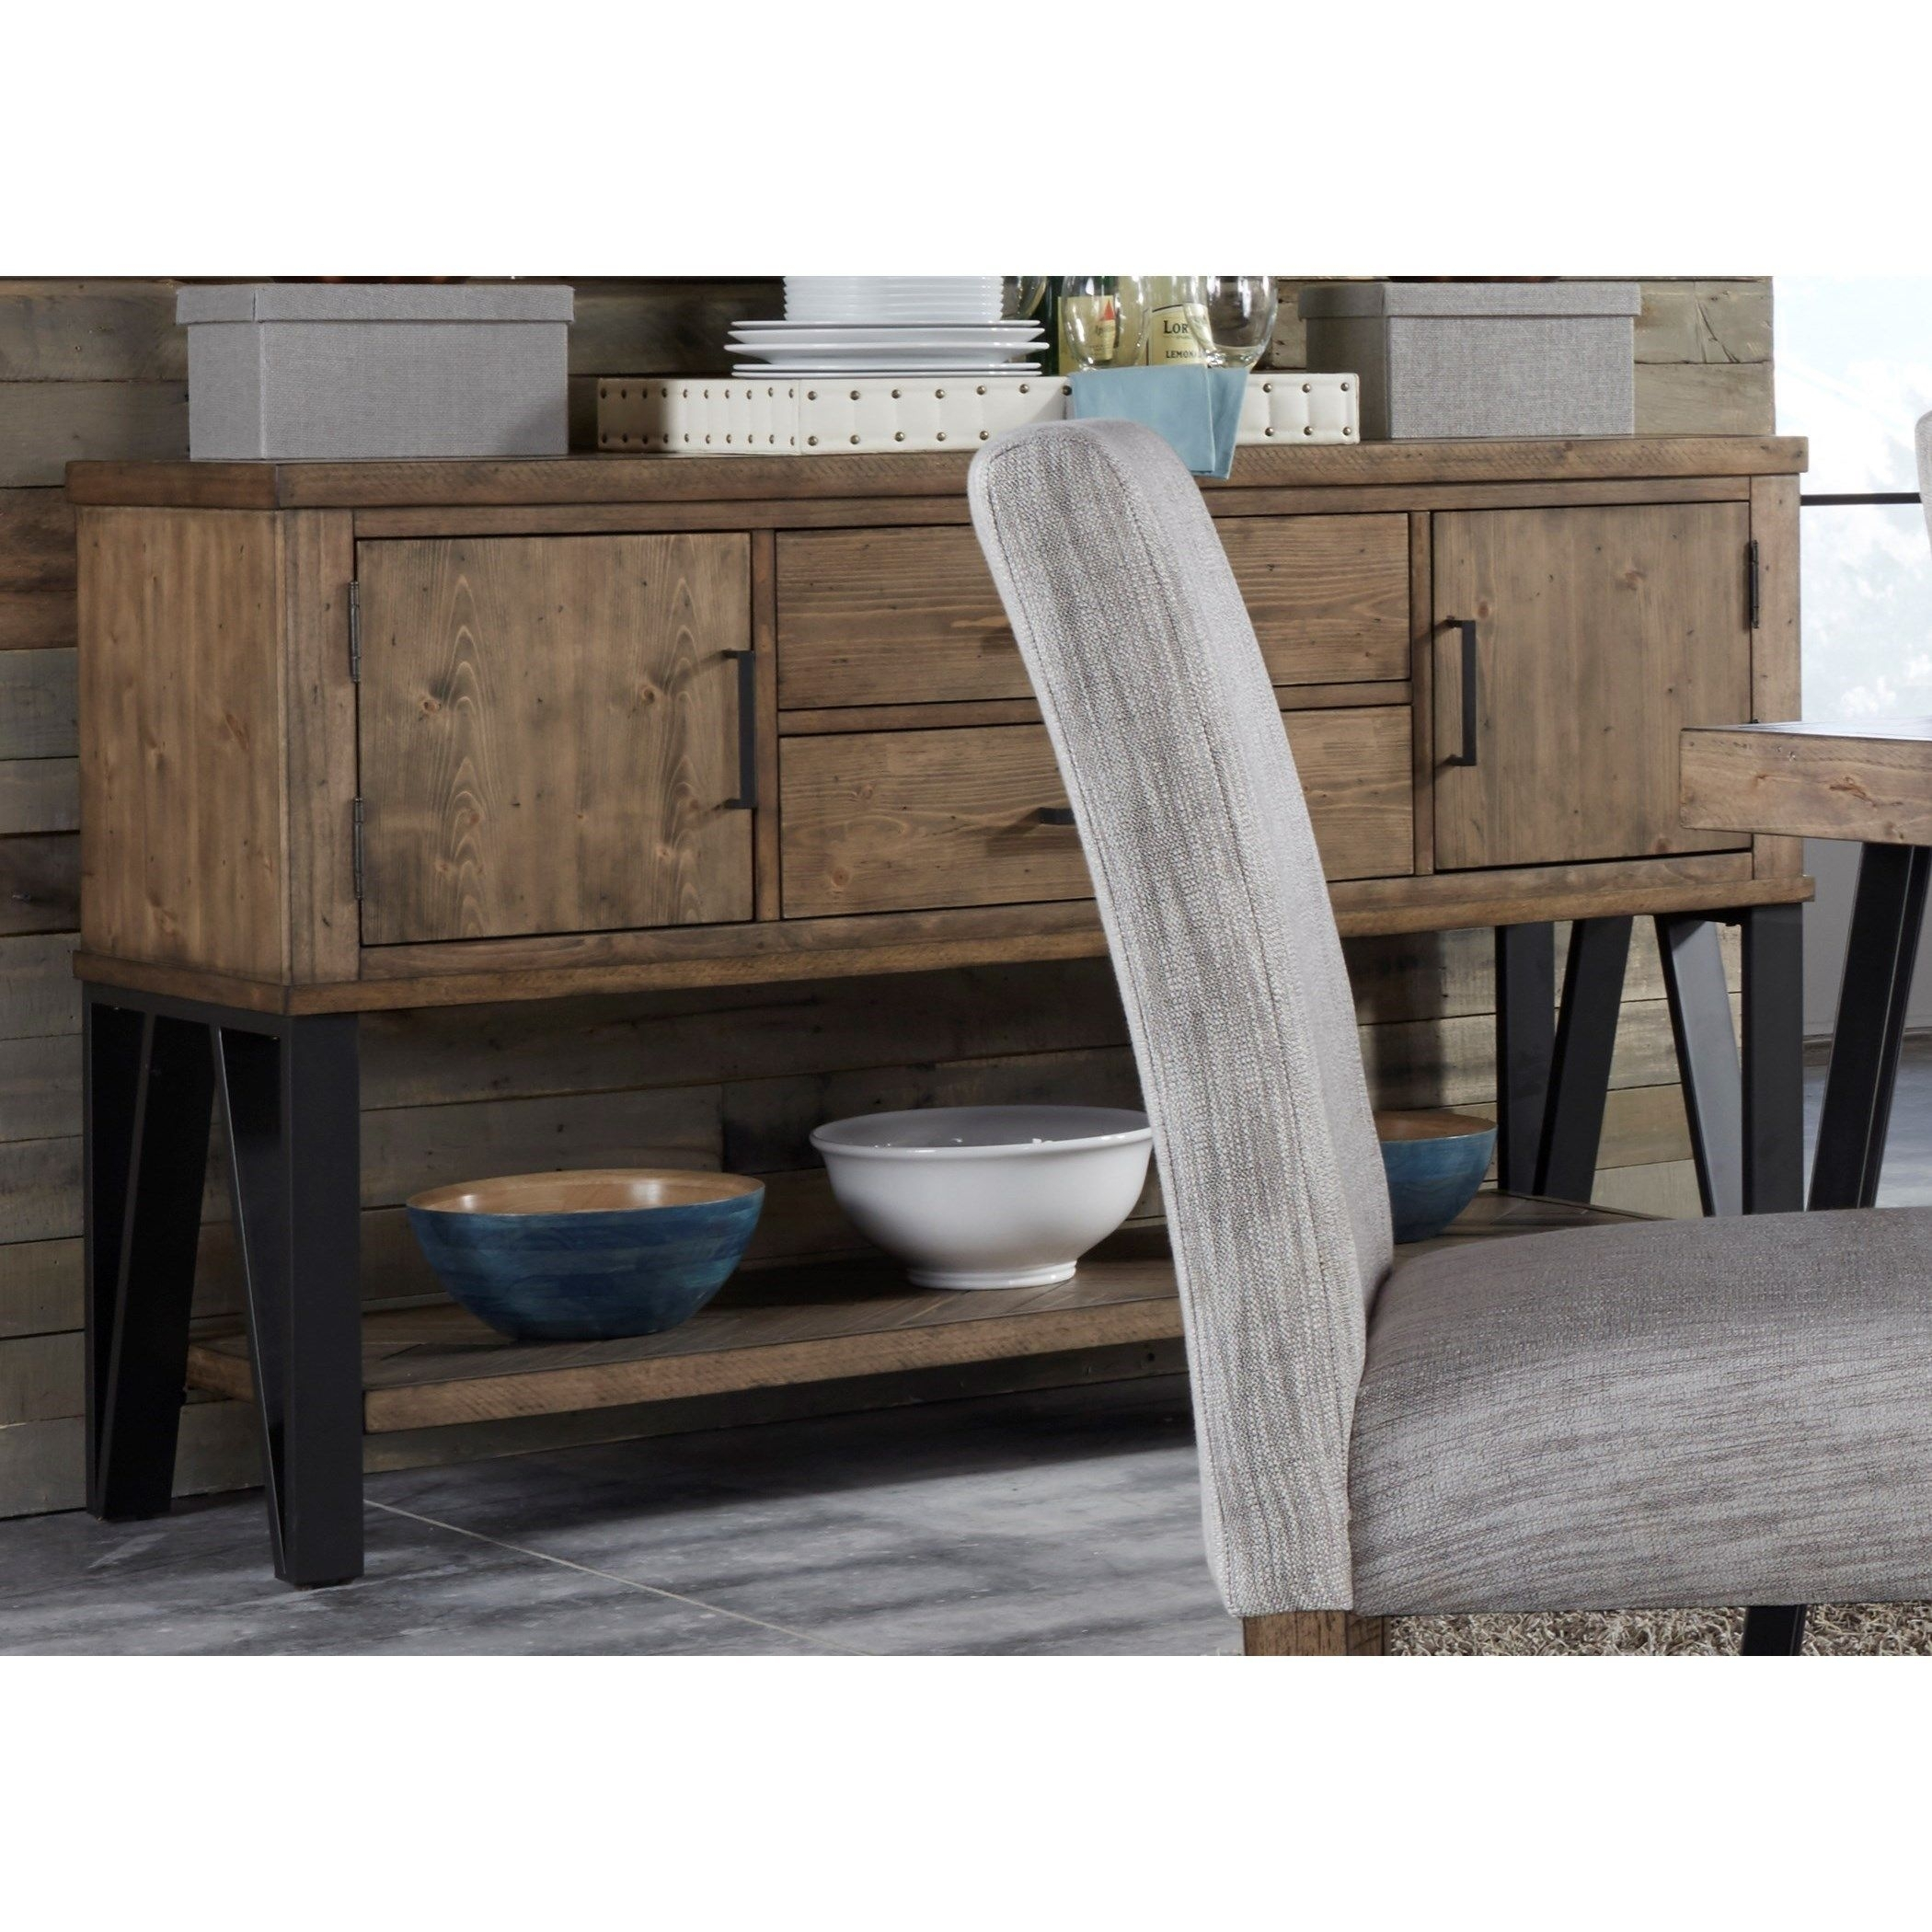 Liberty Furniture Horizons Dining Sideboard – Item Number: 42 Sb6036 Inside Most Recently Released 2 Door/2 Drawer Cast Jali Sideboards (View 12 of 20)